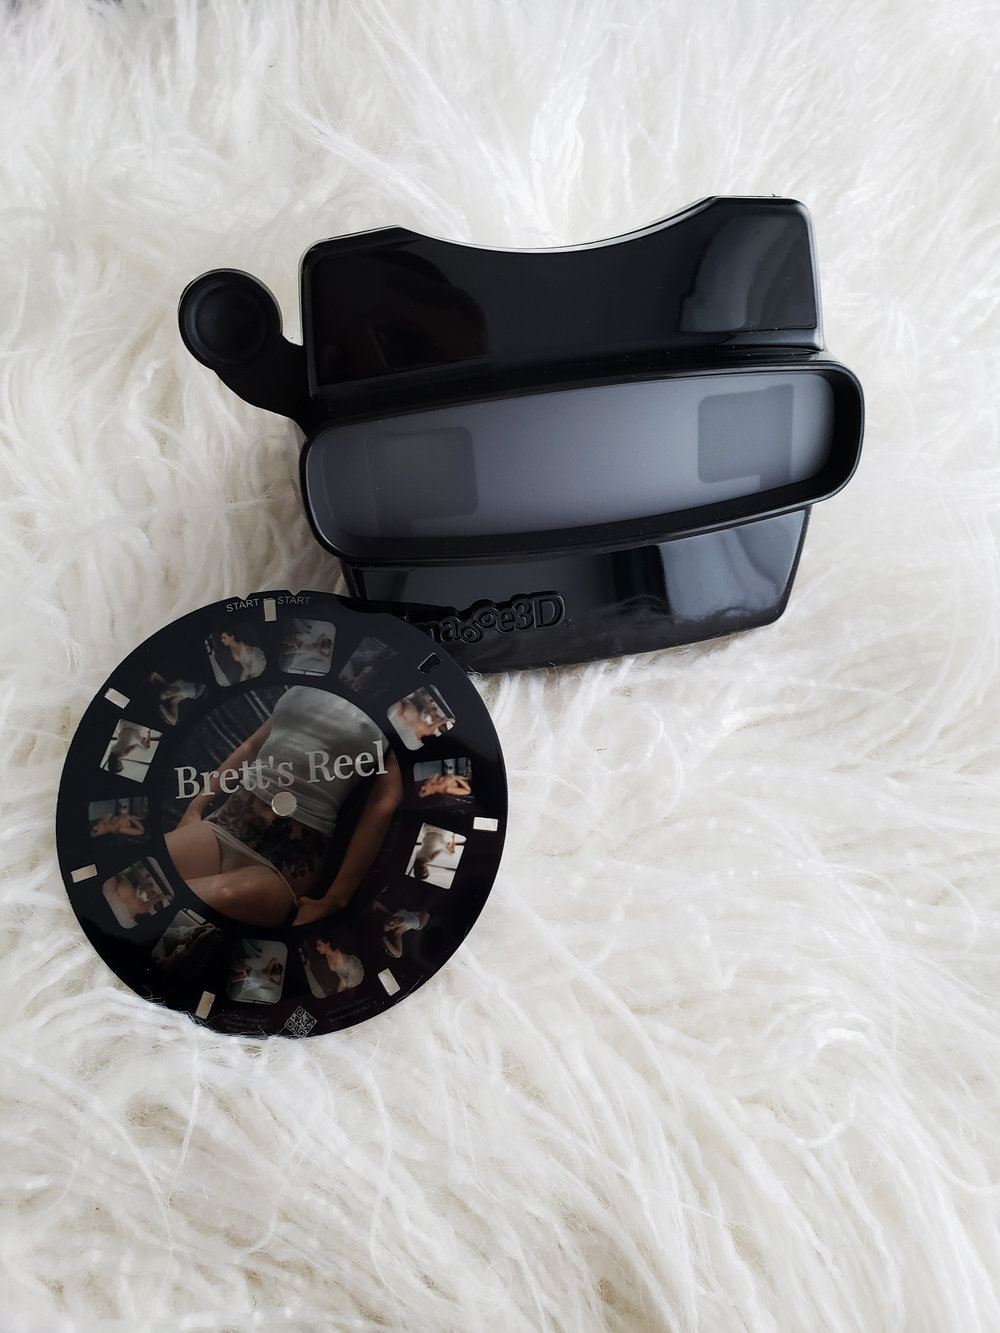 Feeling nostalgic? Our retroviewer is the perfect gift for a private viewing experience. Bonus points for those brave enough to come back and add a reel!